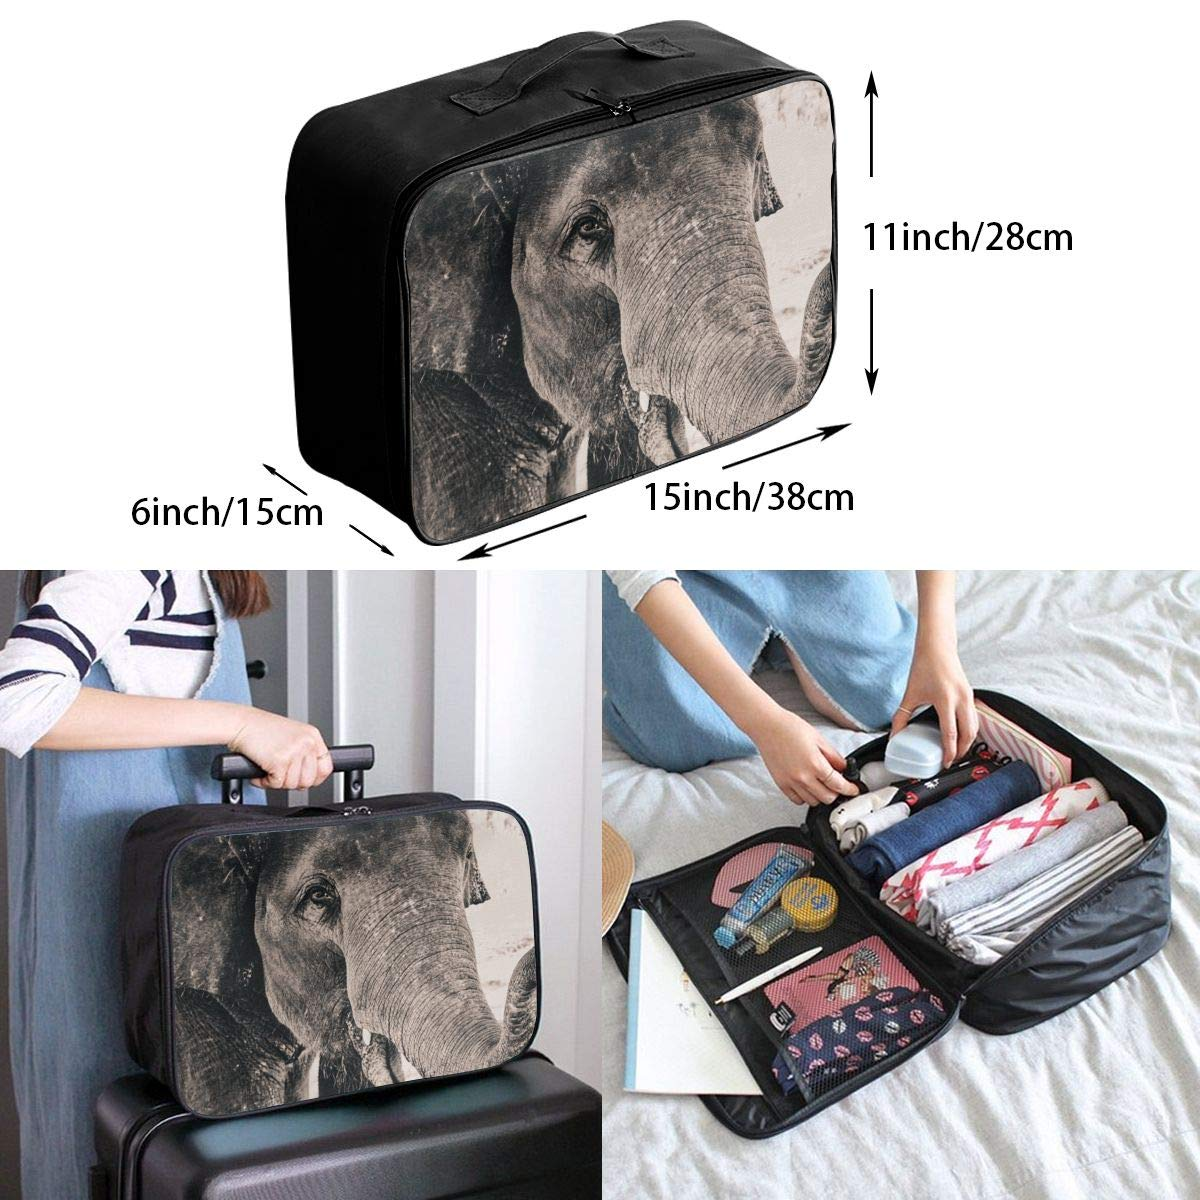 Travel Luggage Duffle Bag Lightweight Portable Handbag Elephant Print Large Capacity Waterproof Foldable Storage Tote